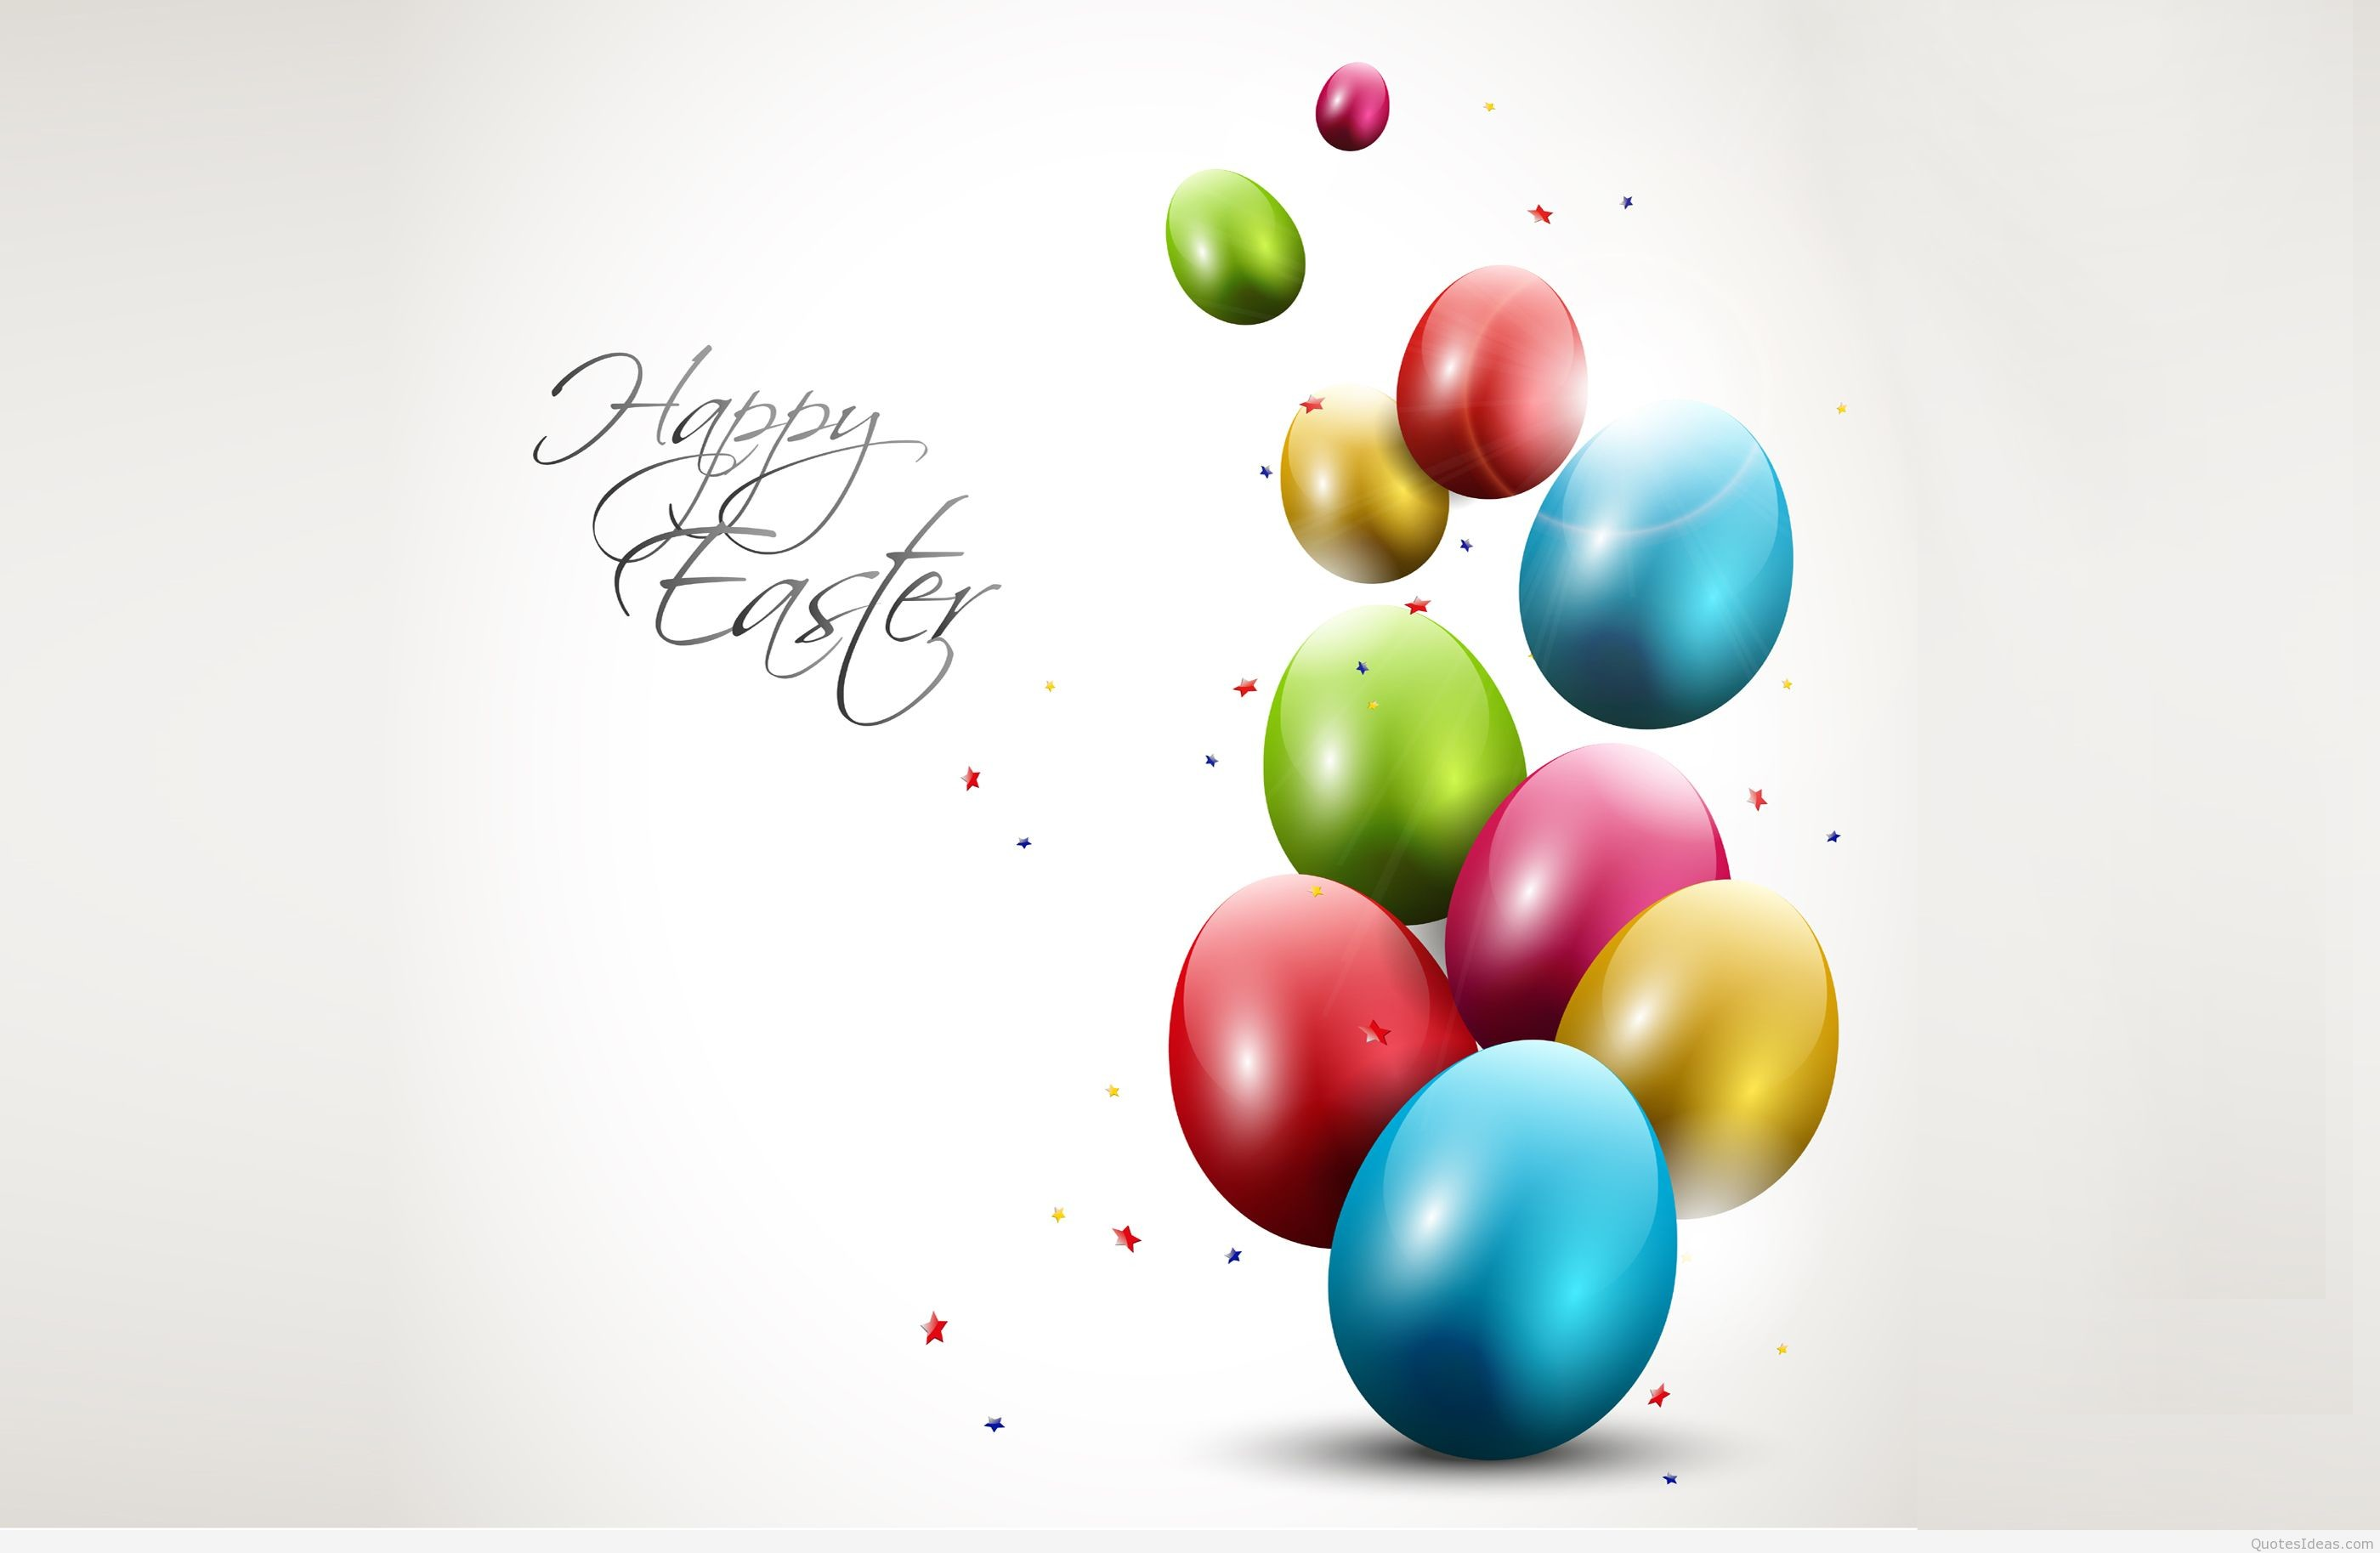 2800x1827 OLYMPUS DIGITAL CAMERA Modern Easter background with colorful eggs ...